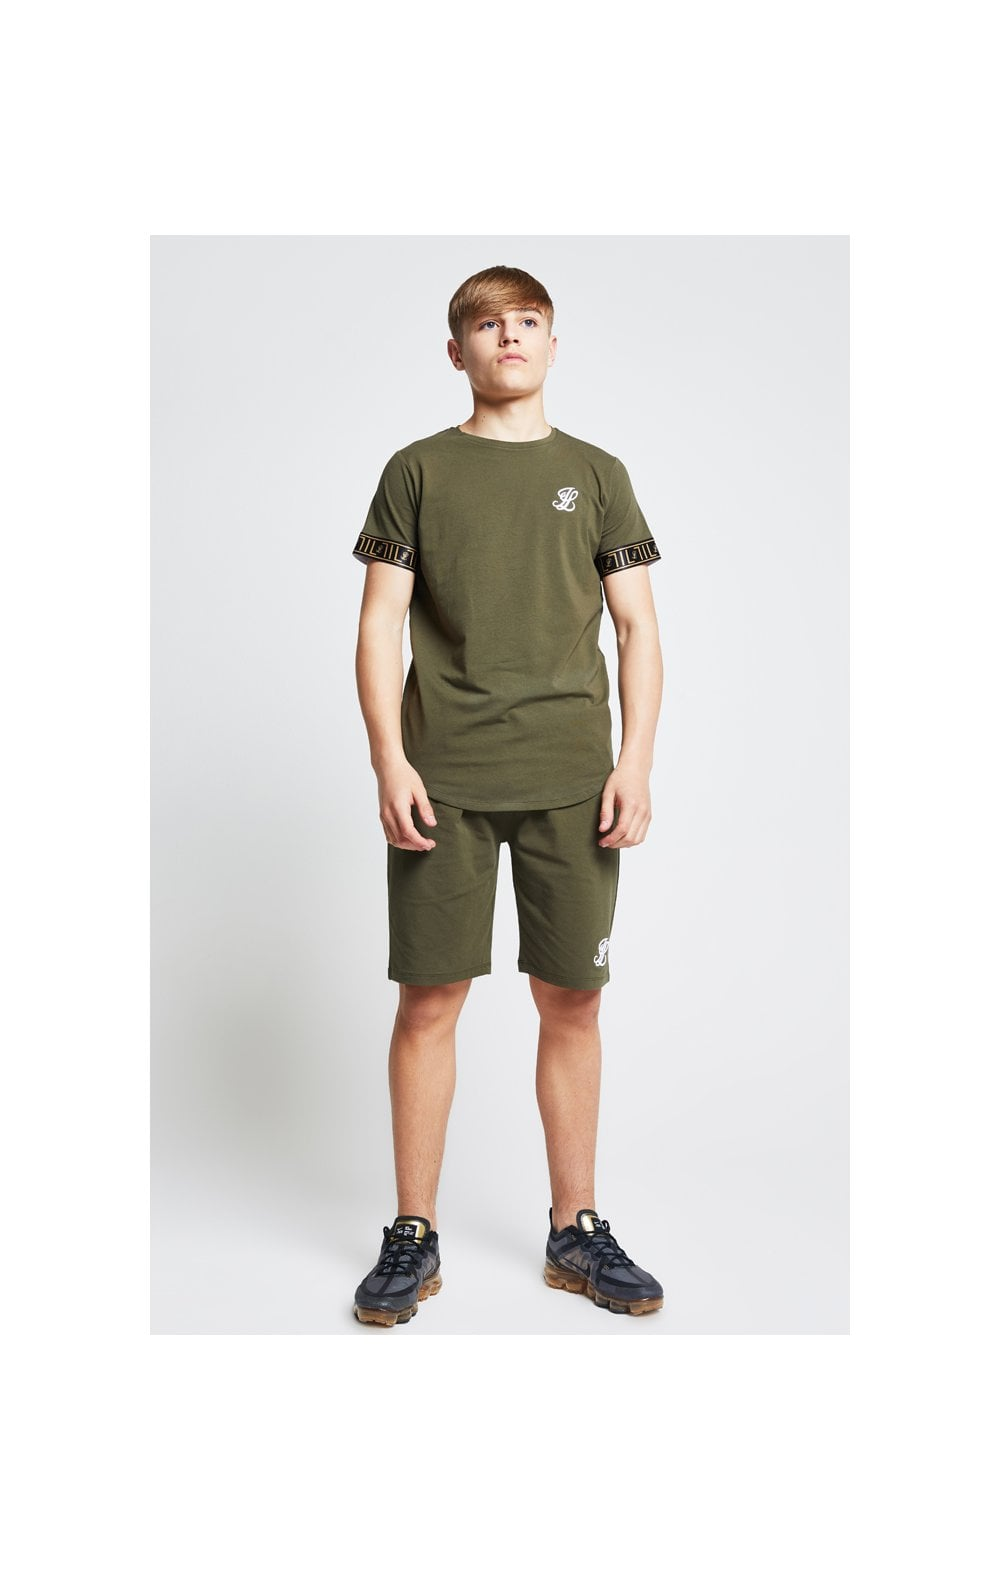 Illusive London Shorts Jersey mit Zierband - Khaki (2)